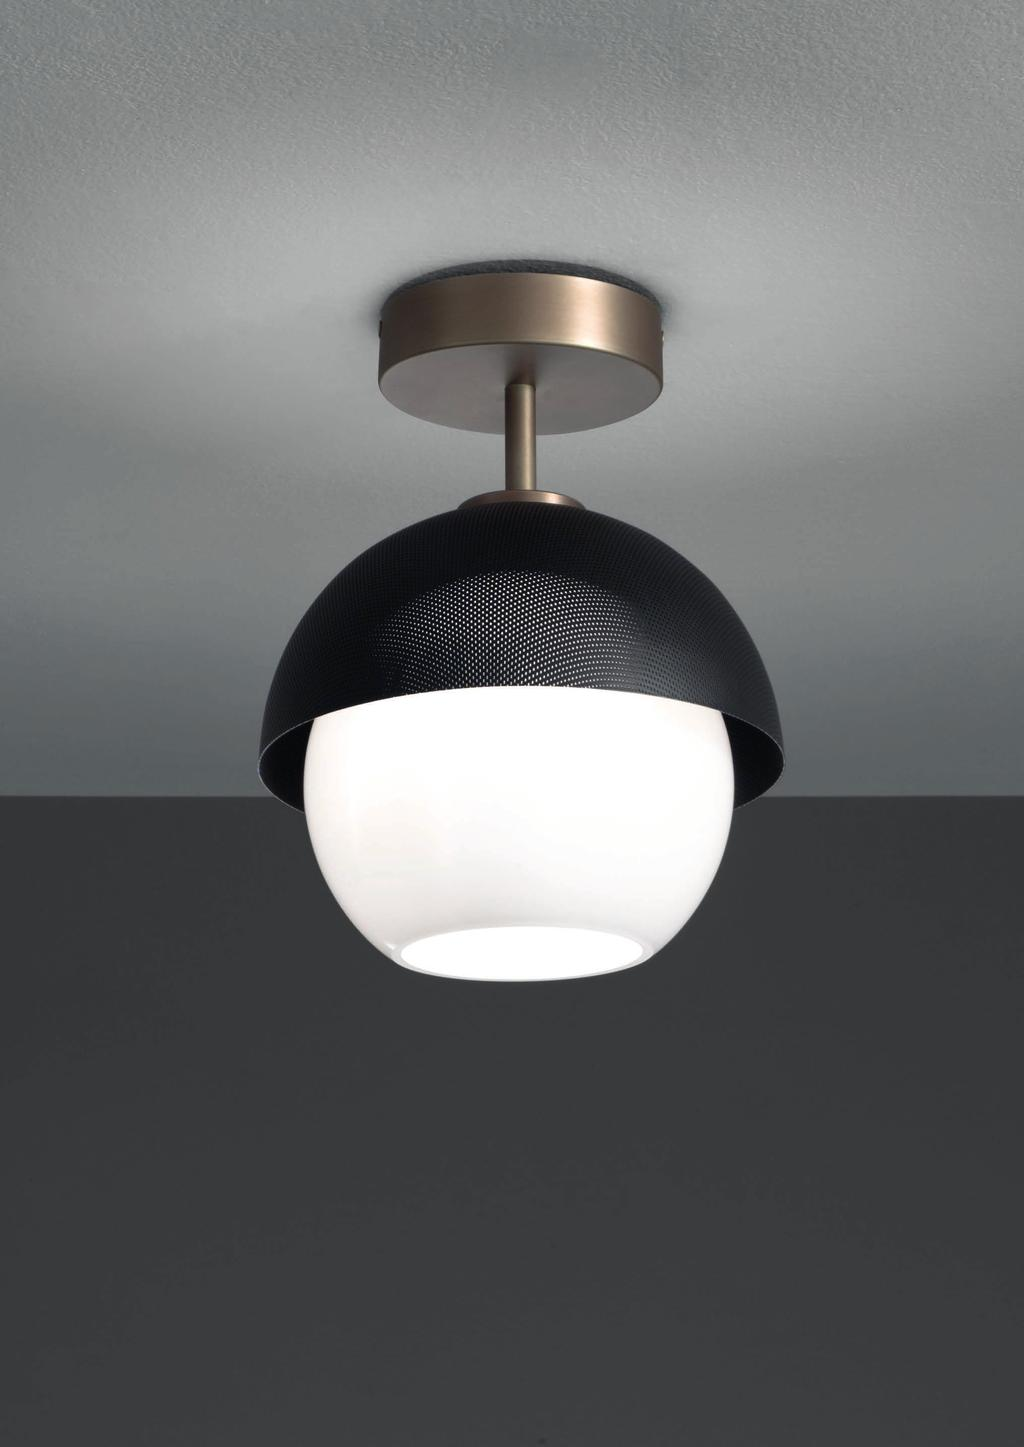 URBAN CEILING 25cm-9 8 Ø 20cm-7 8 Ceiling lamp with diffuse light and white, tobacco or smoke Murano blown glass diffuser.